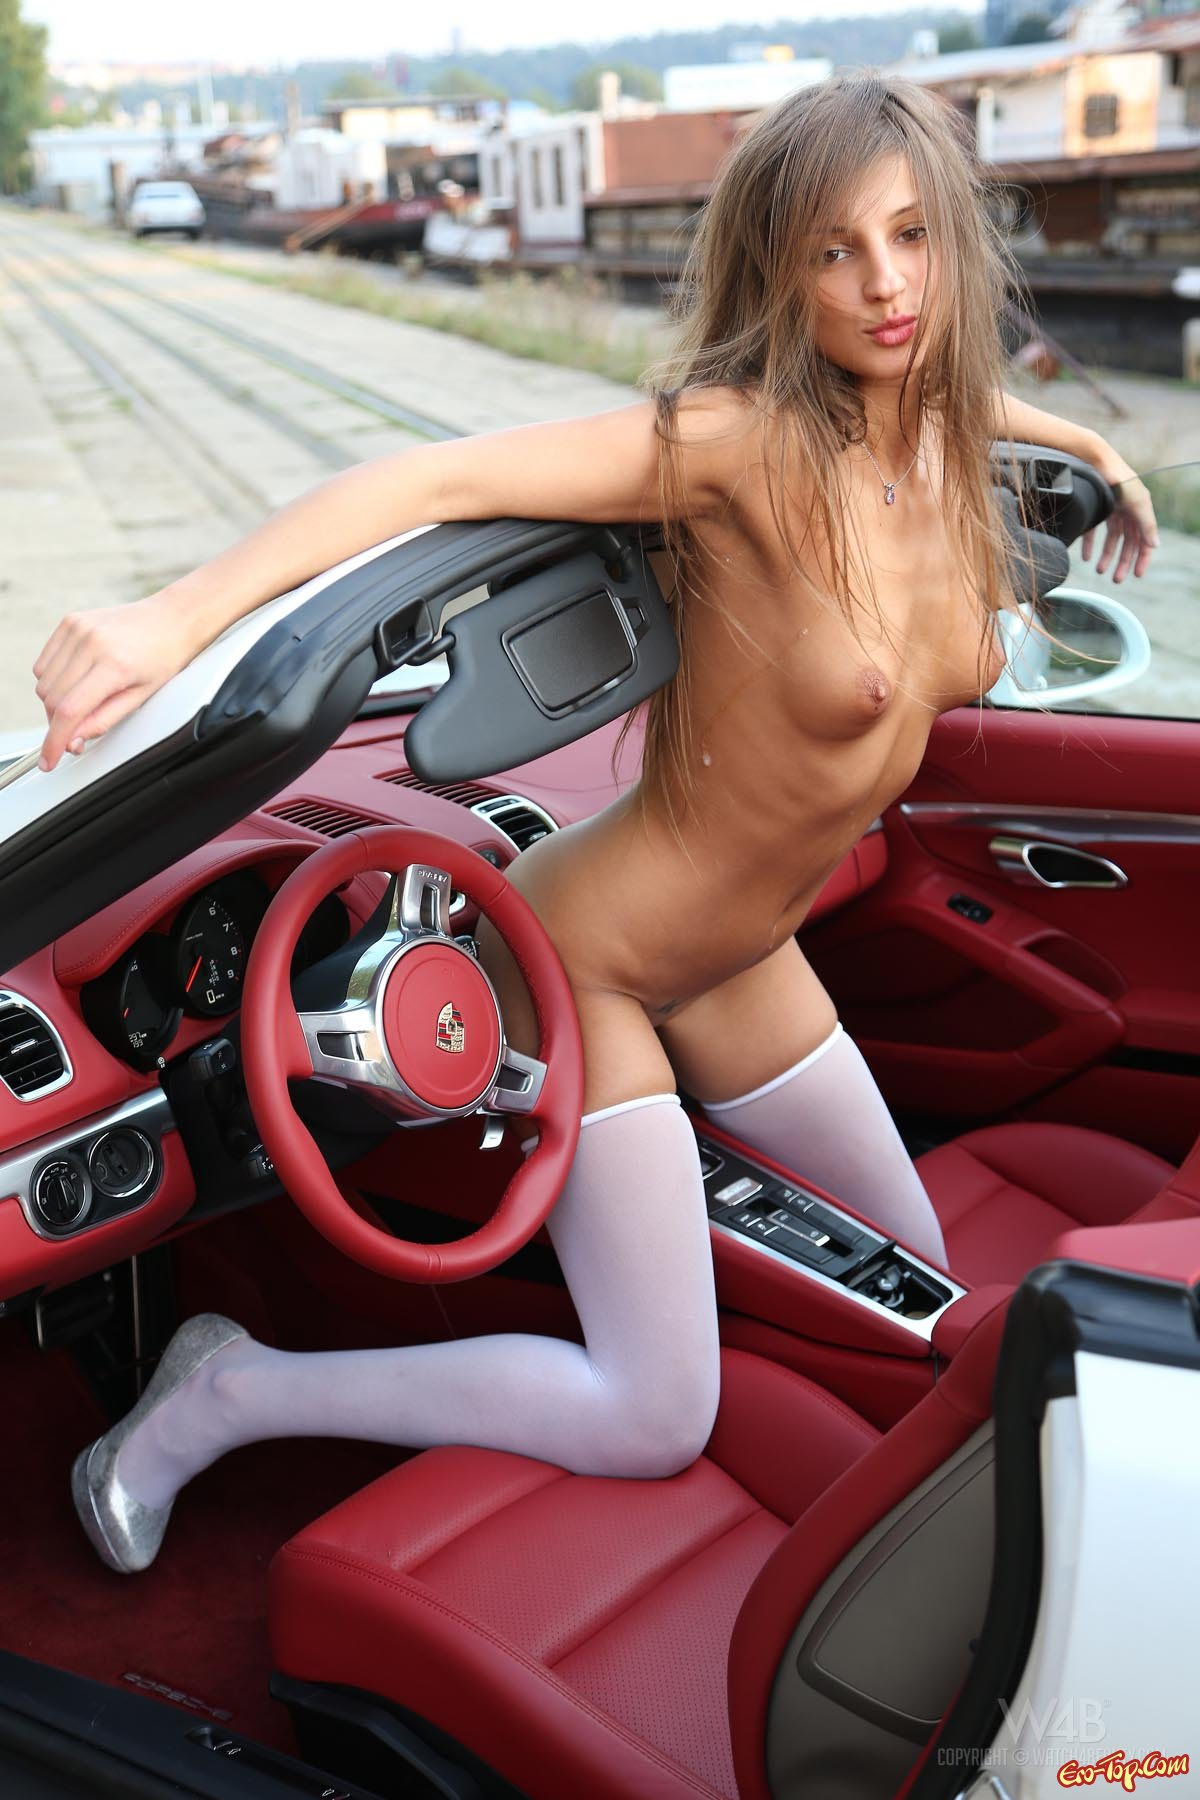 Girls naked in car, just nude grace